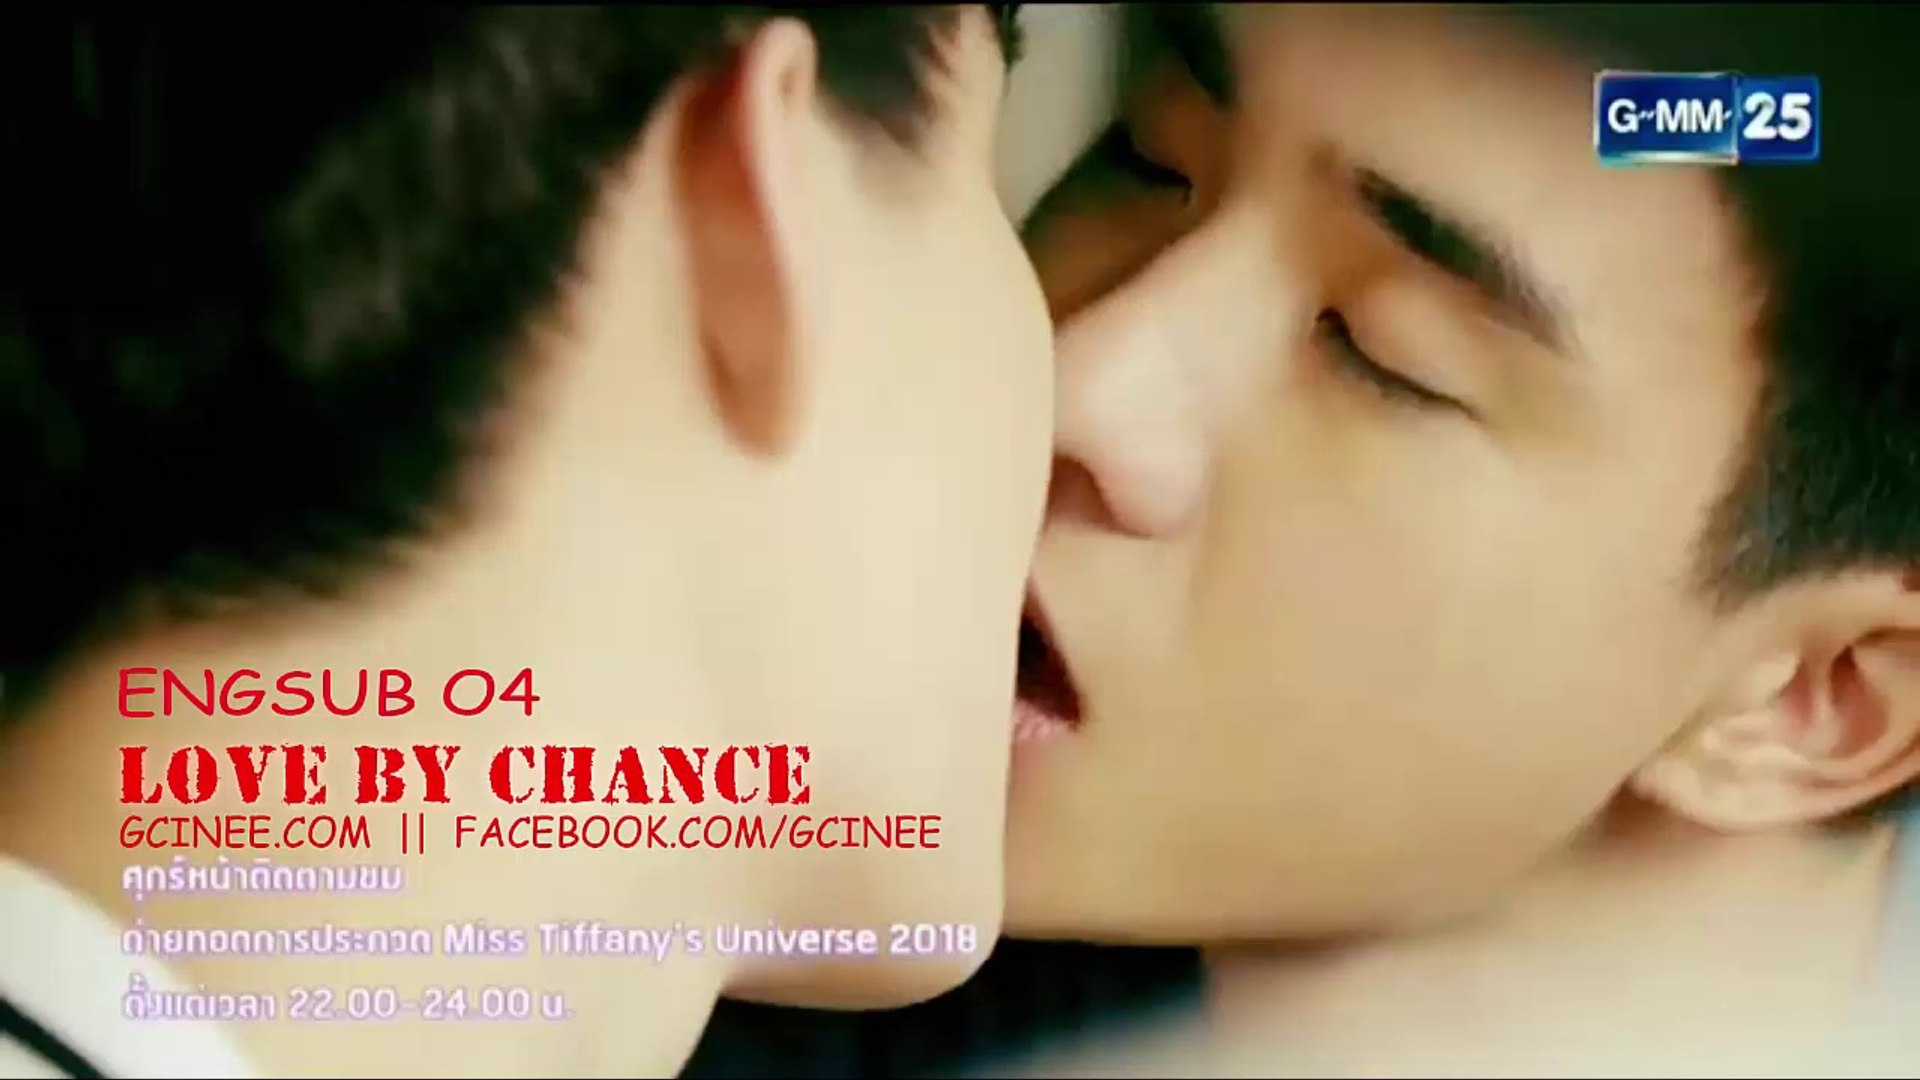 ENGSUB 04 - Love By Chance the series